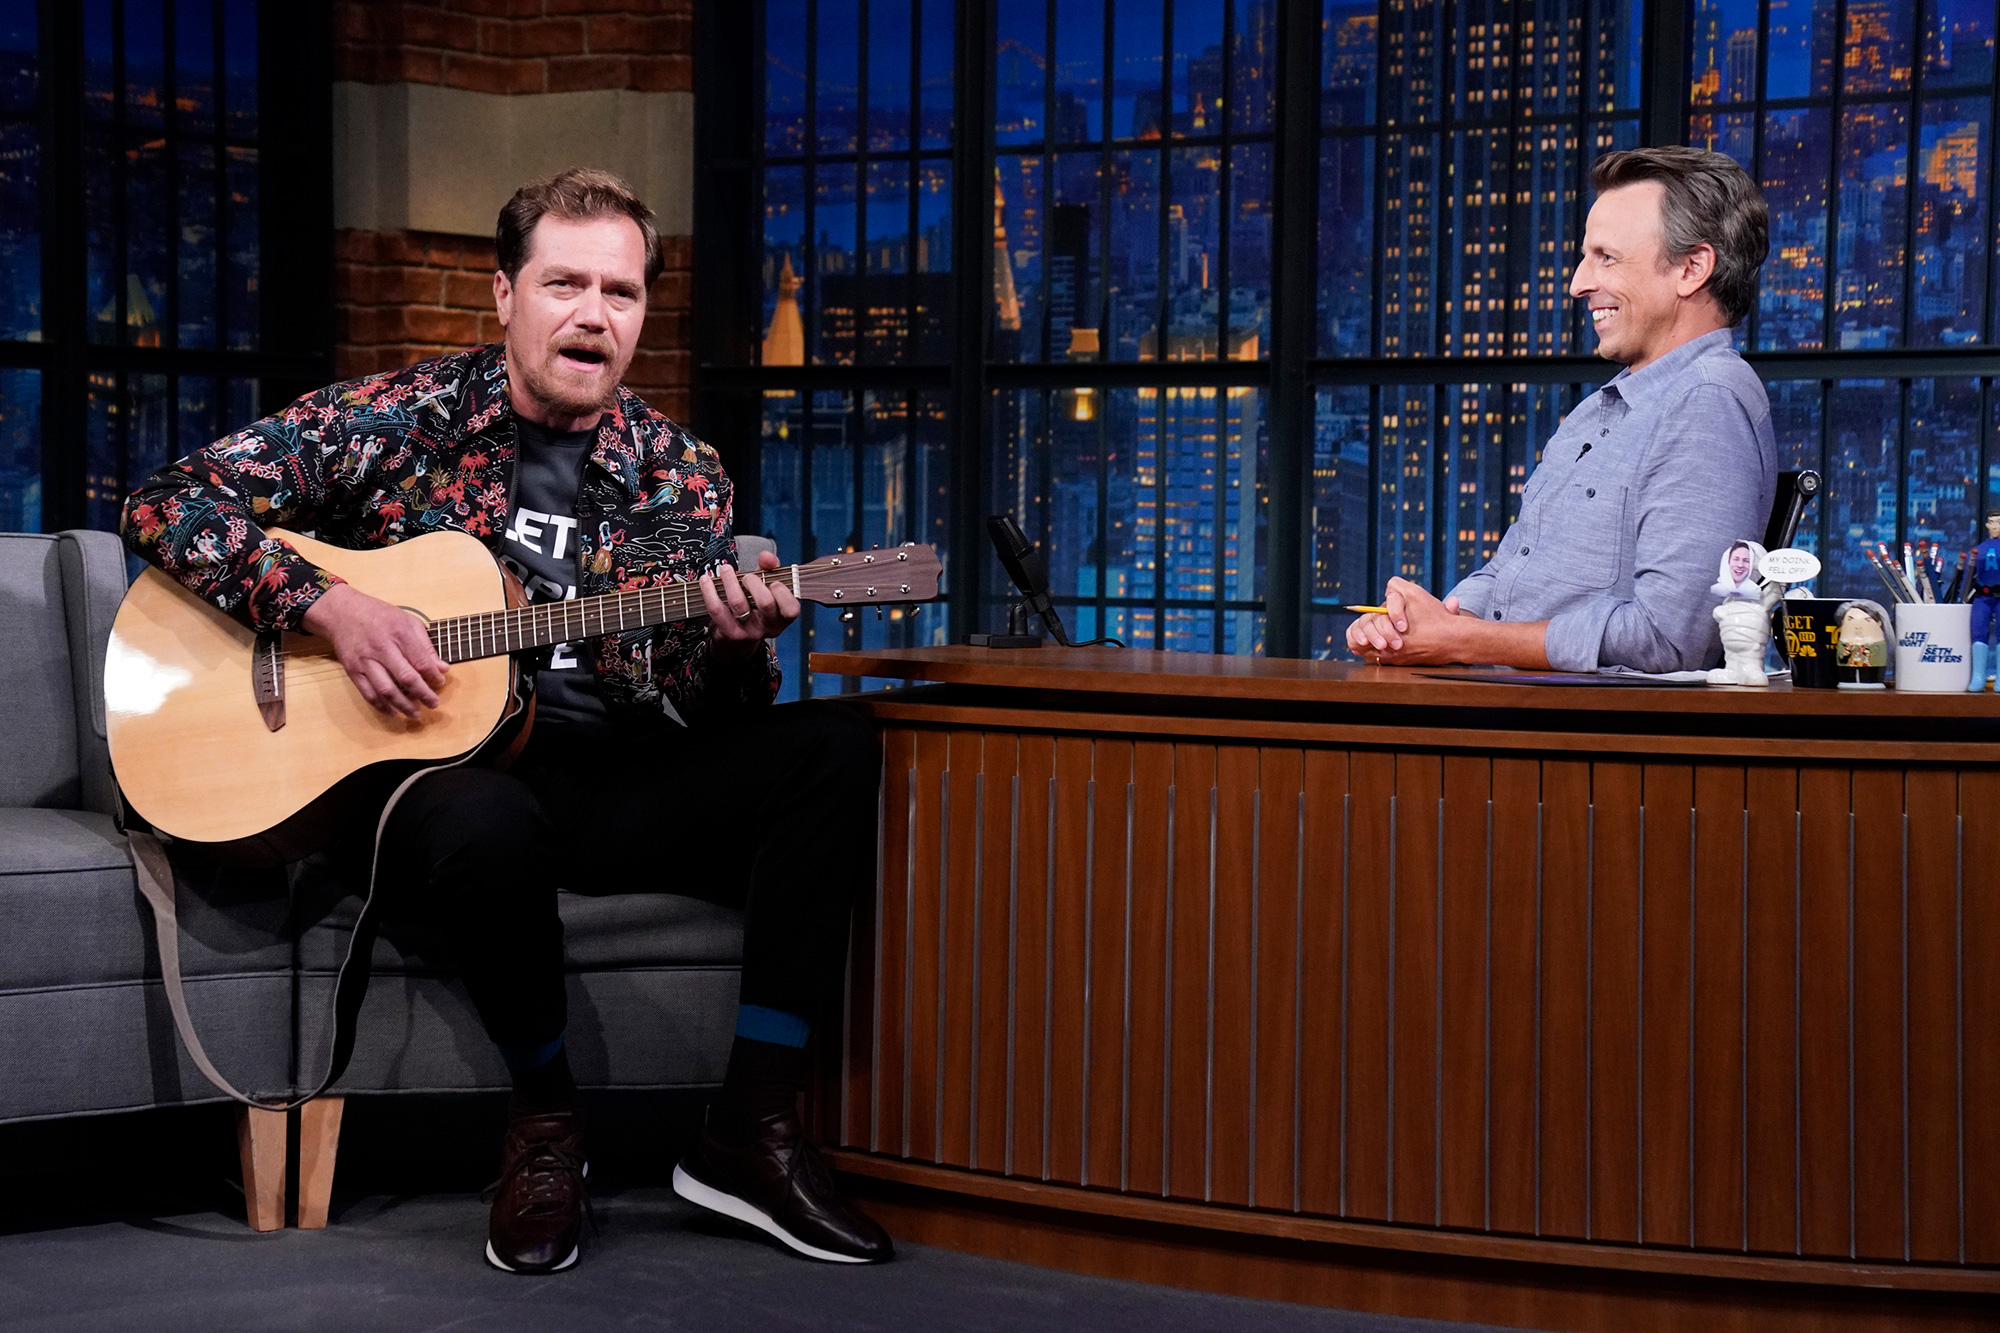 LATE NIGHT WITH SETH MEYERS -- Episode 1186 -- Pictured: (l-r) Actor Michael Shannon during an interview with host Seth Meyers on August 26, 2021